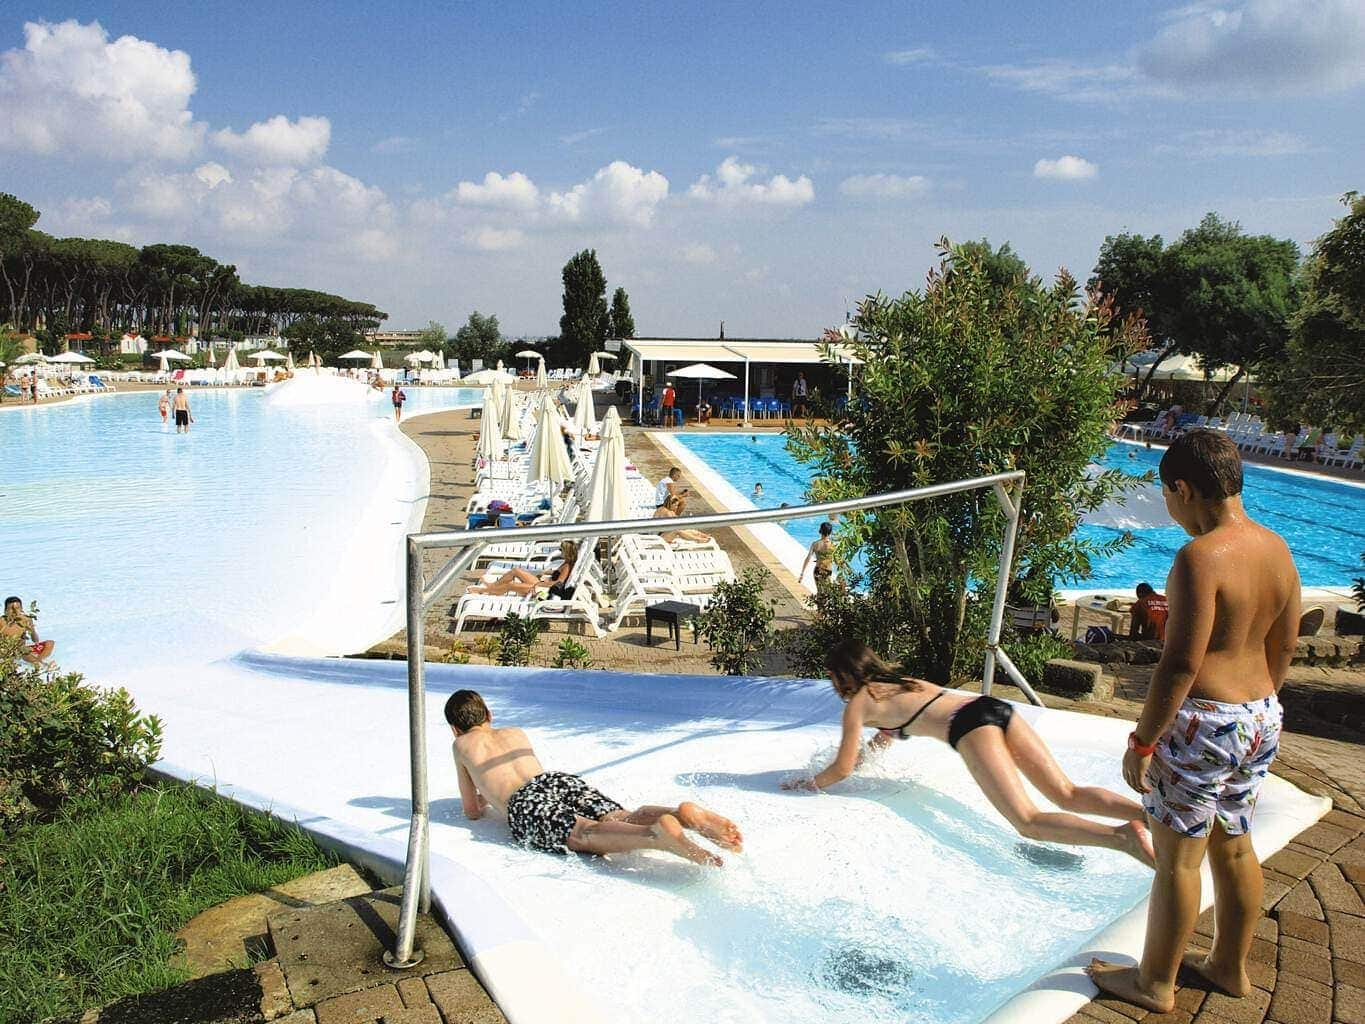 Camping fabulous in rome with eurocamp mini travellers - Holiday homes in somerset with swimming pool ...